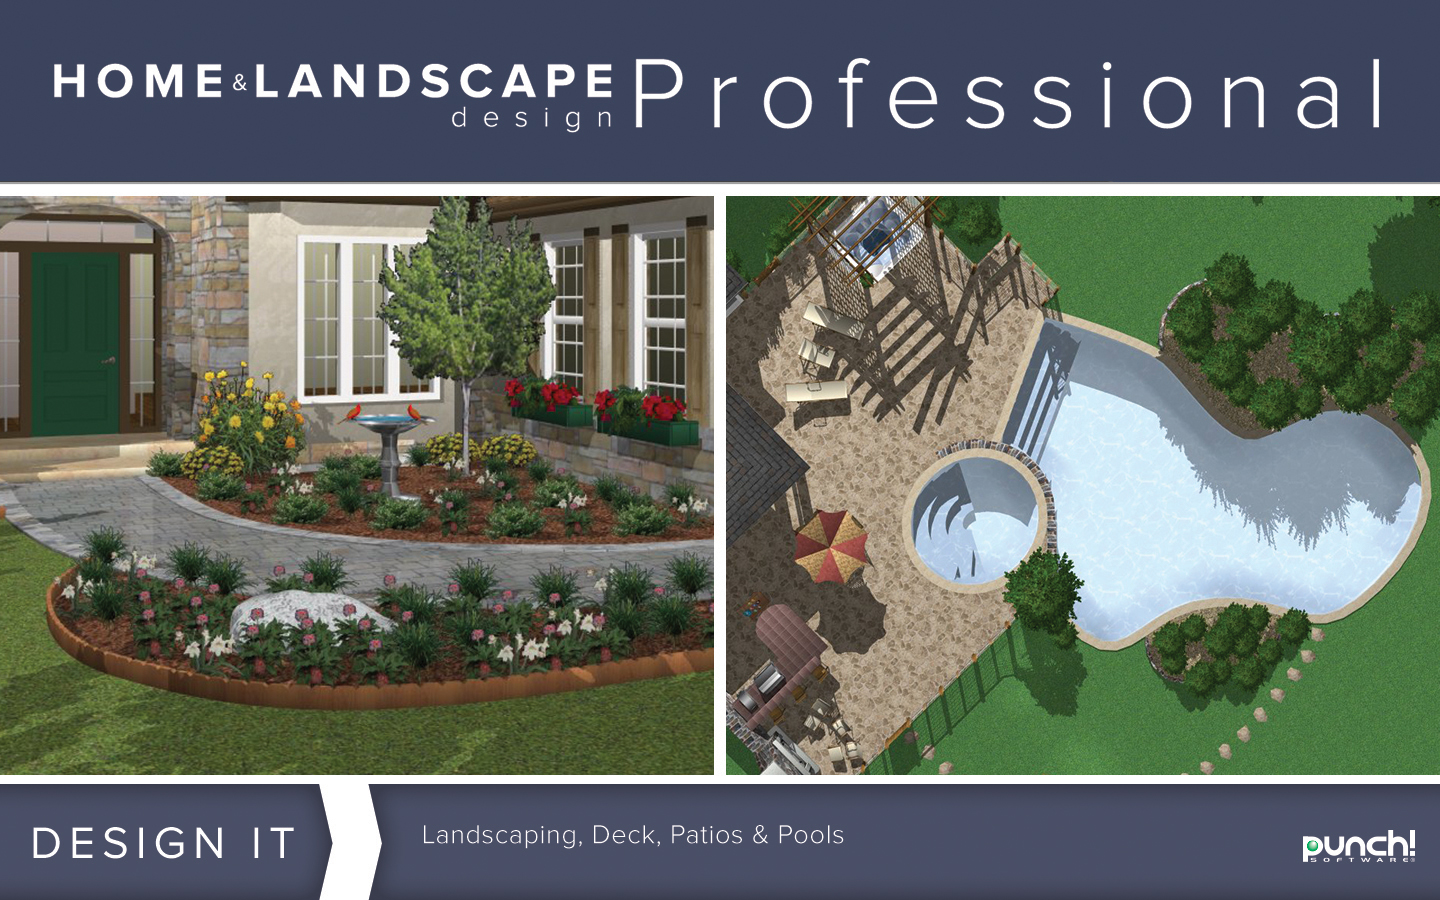 Punch home landscape design professional v19 home for Punch home landscape design crack